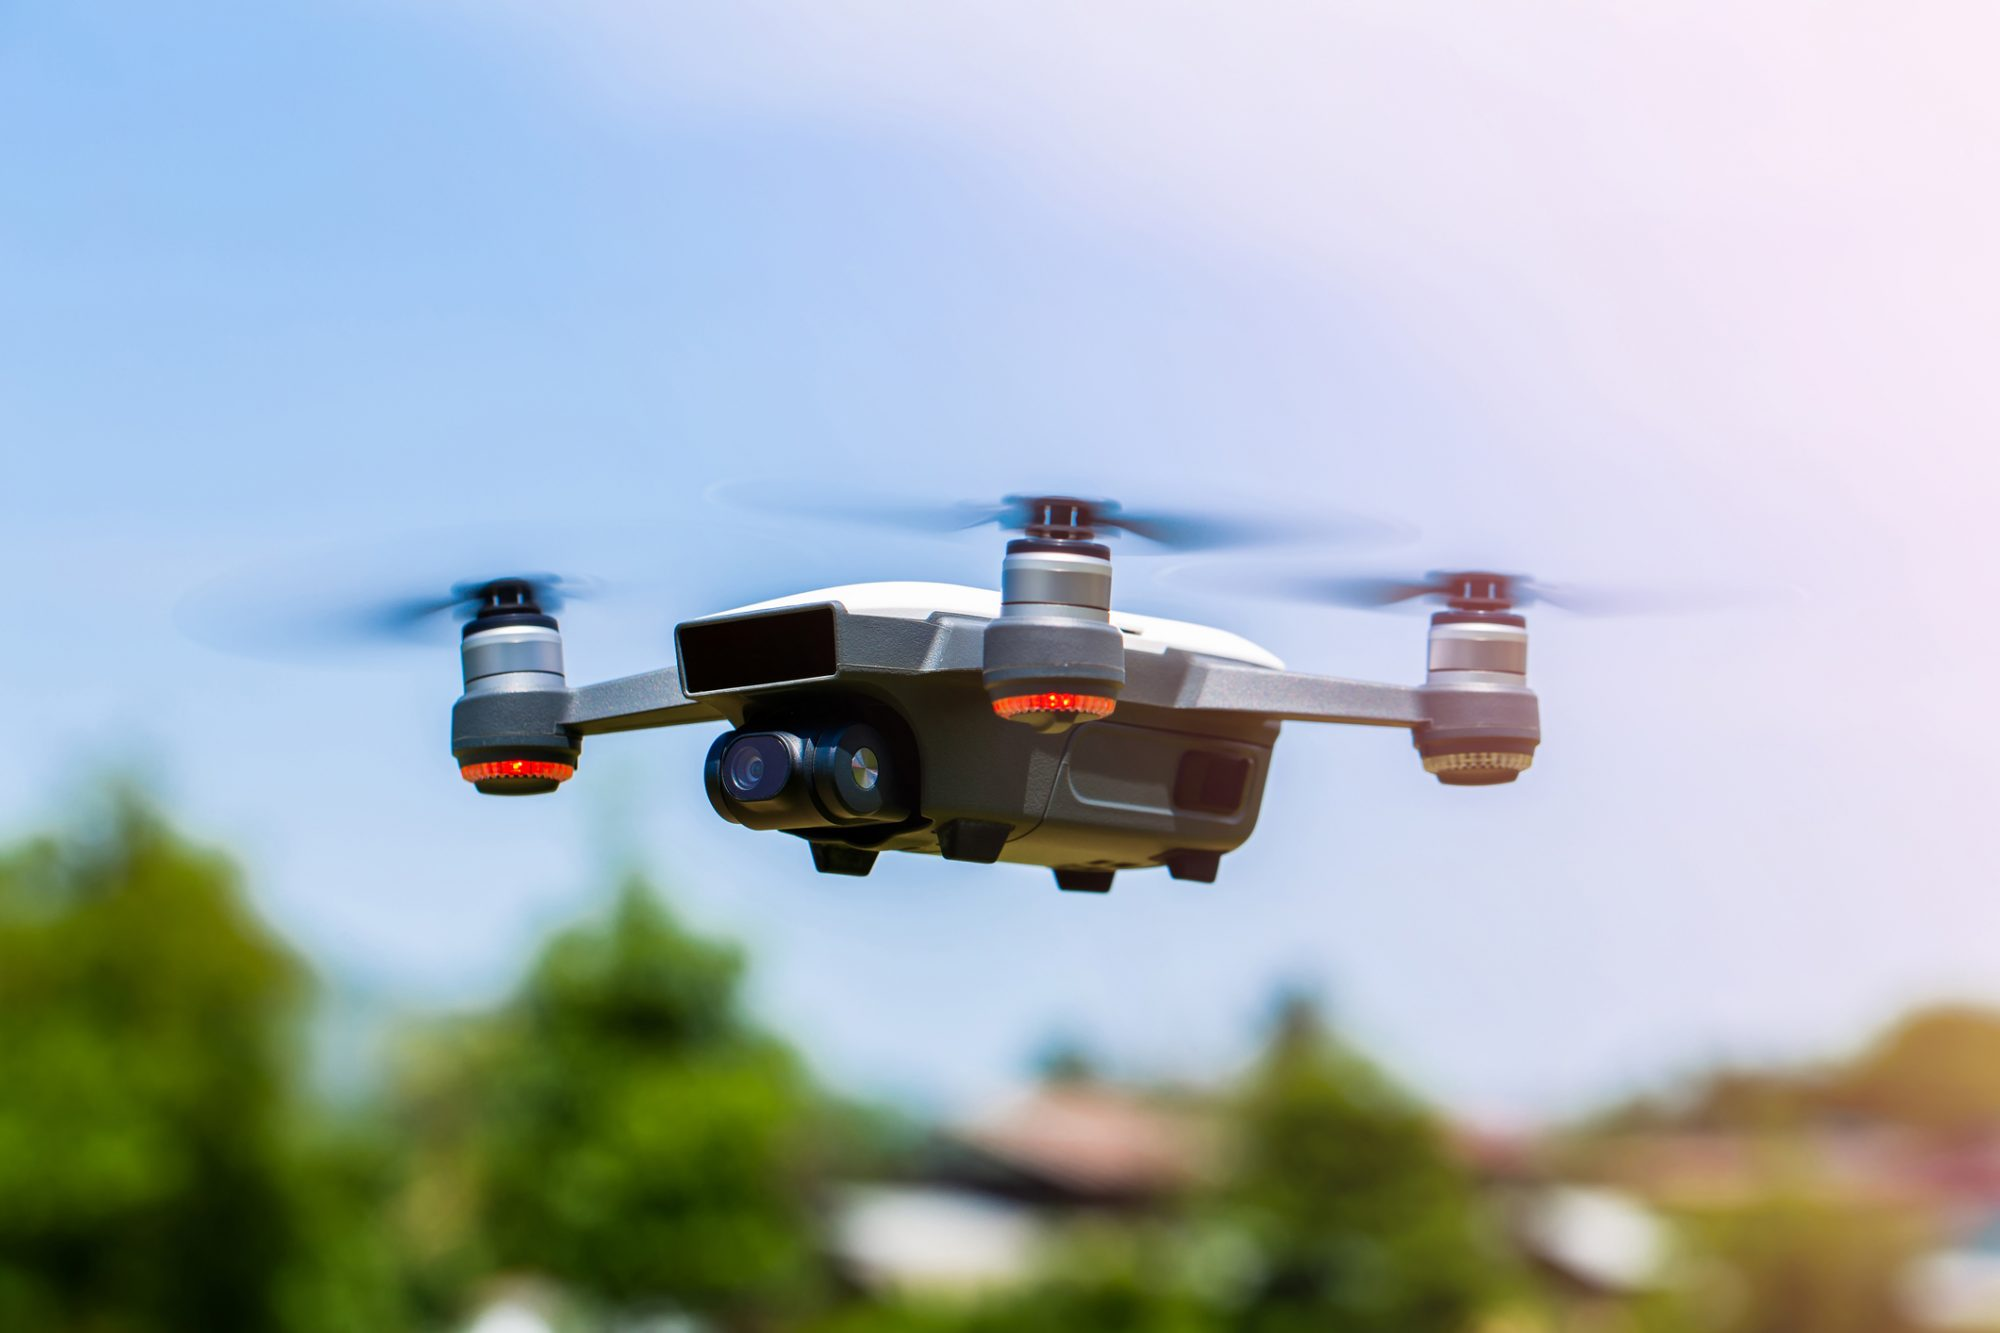 The Drone Era: The Emergence Of Drones